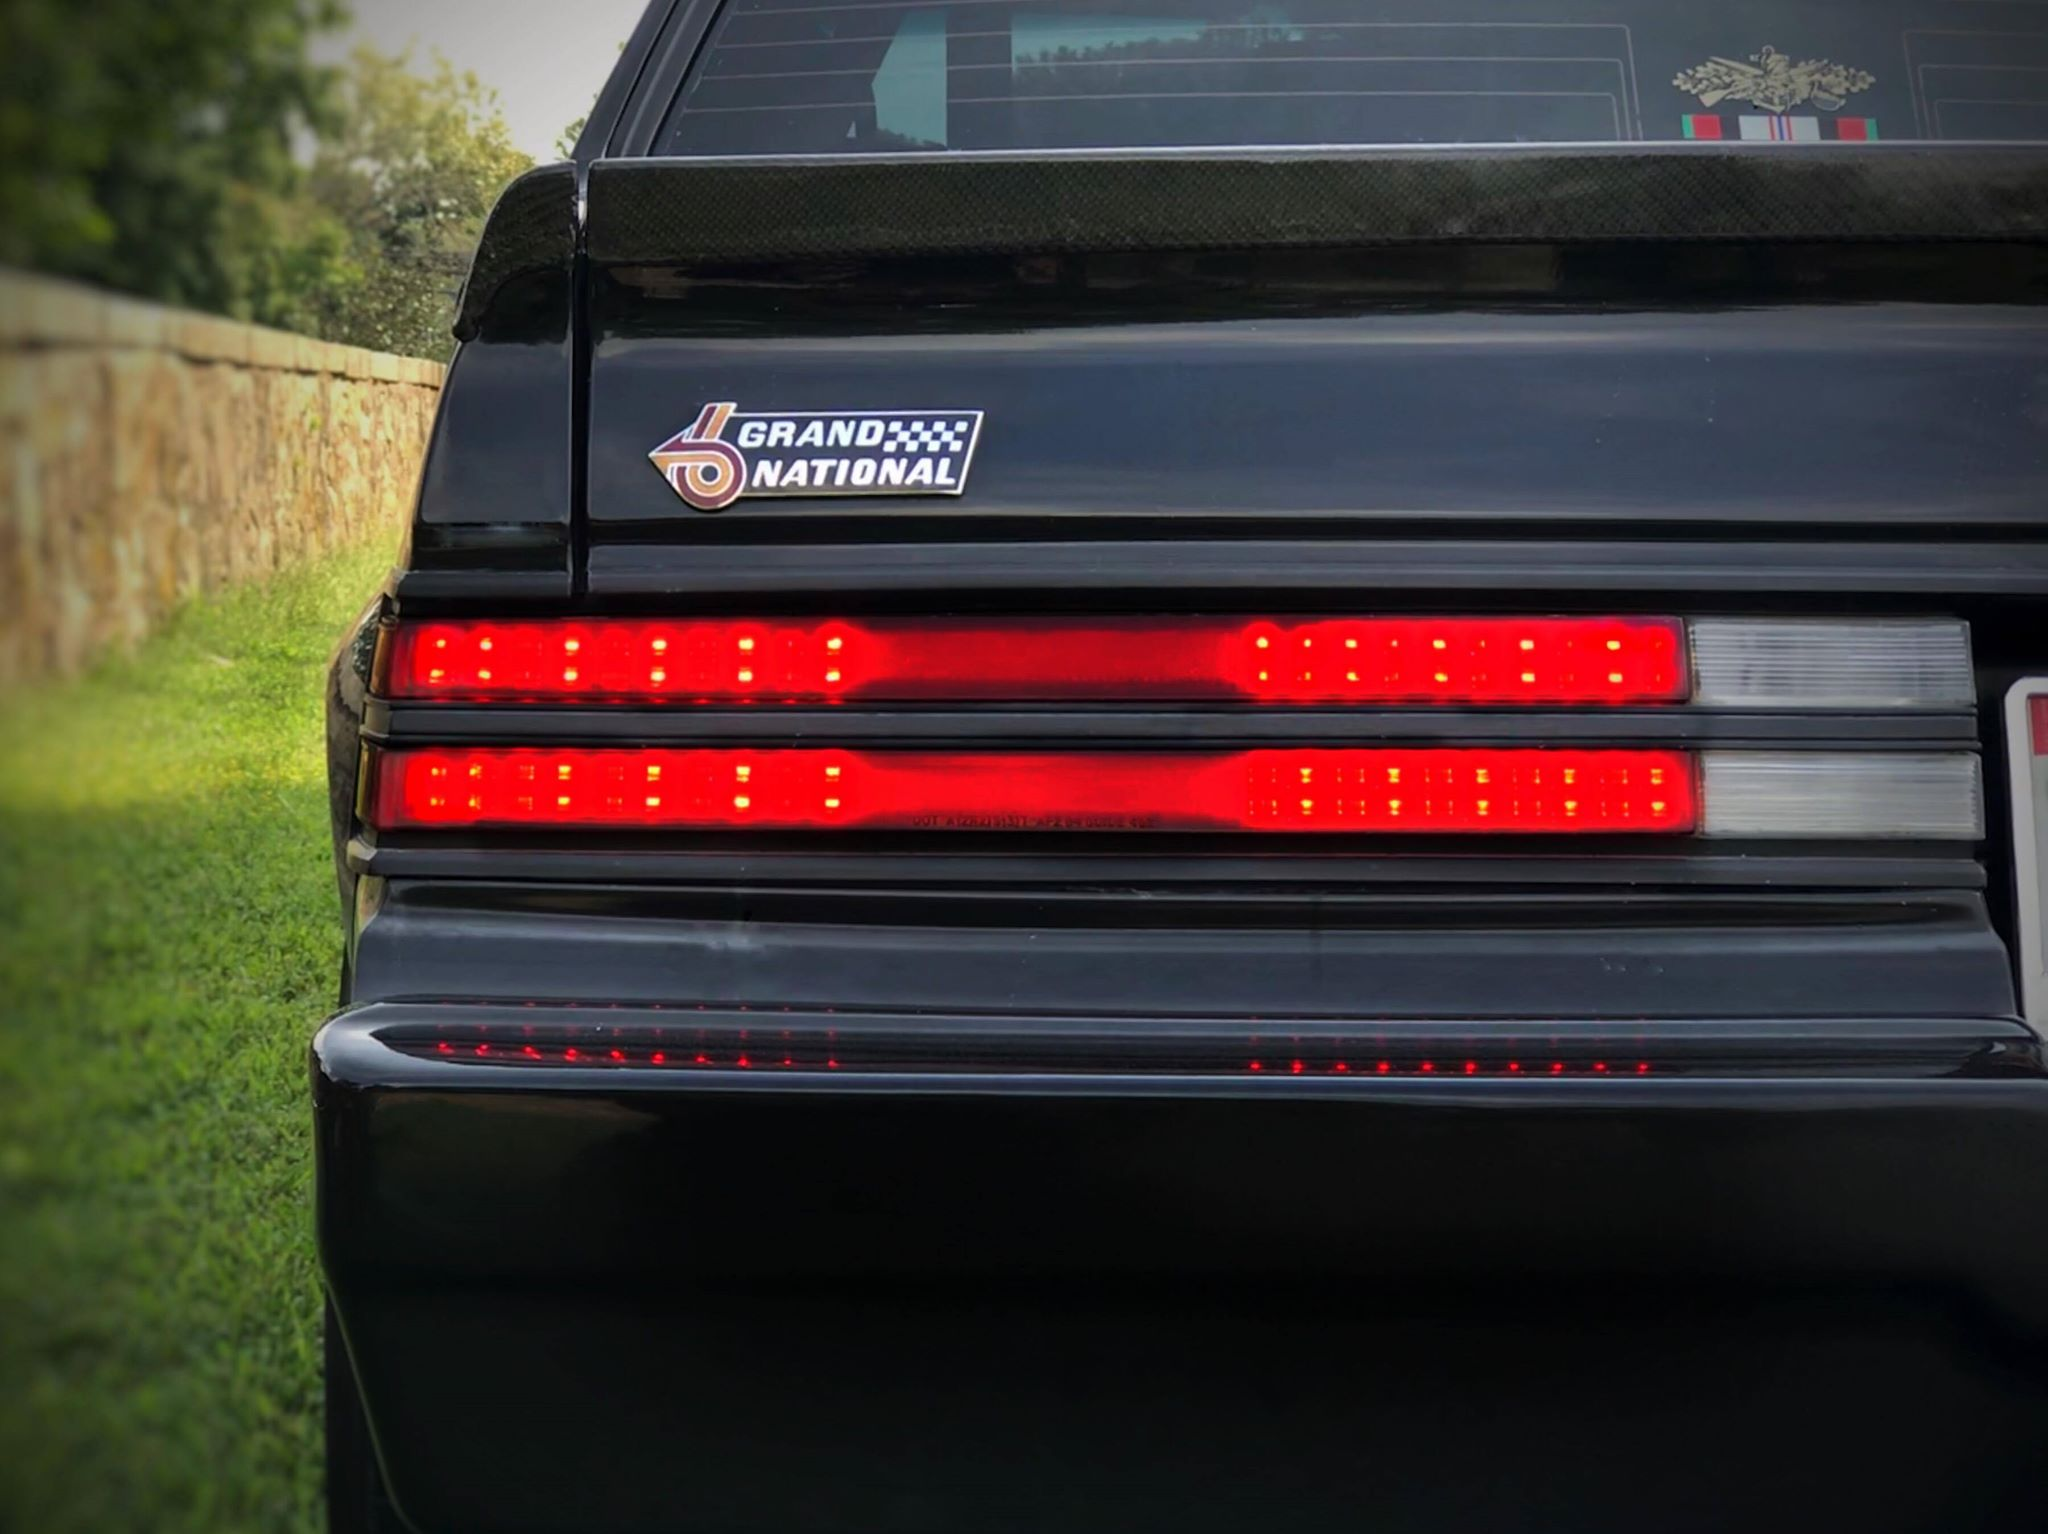 Led Regal 1983 1987 Buick Regal Grand National Digital Tail Light Panels